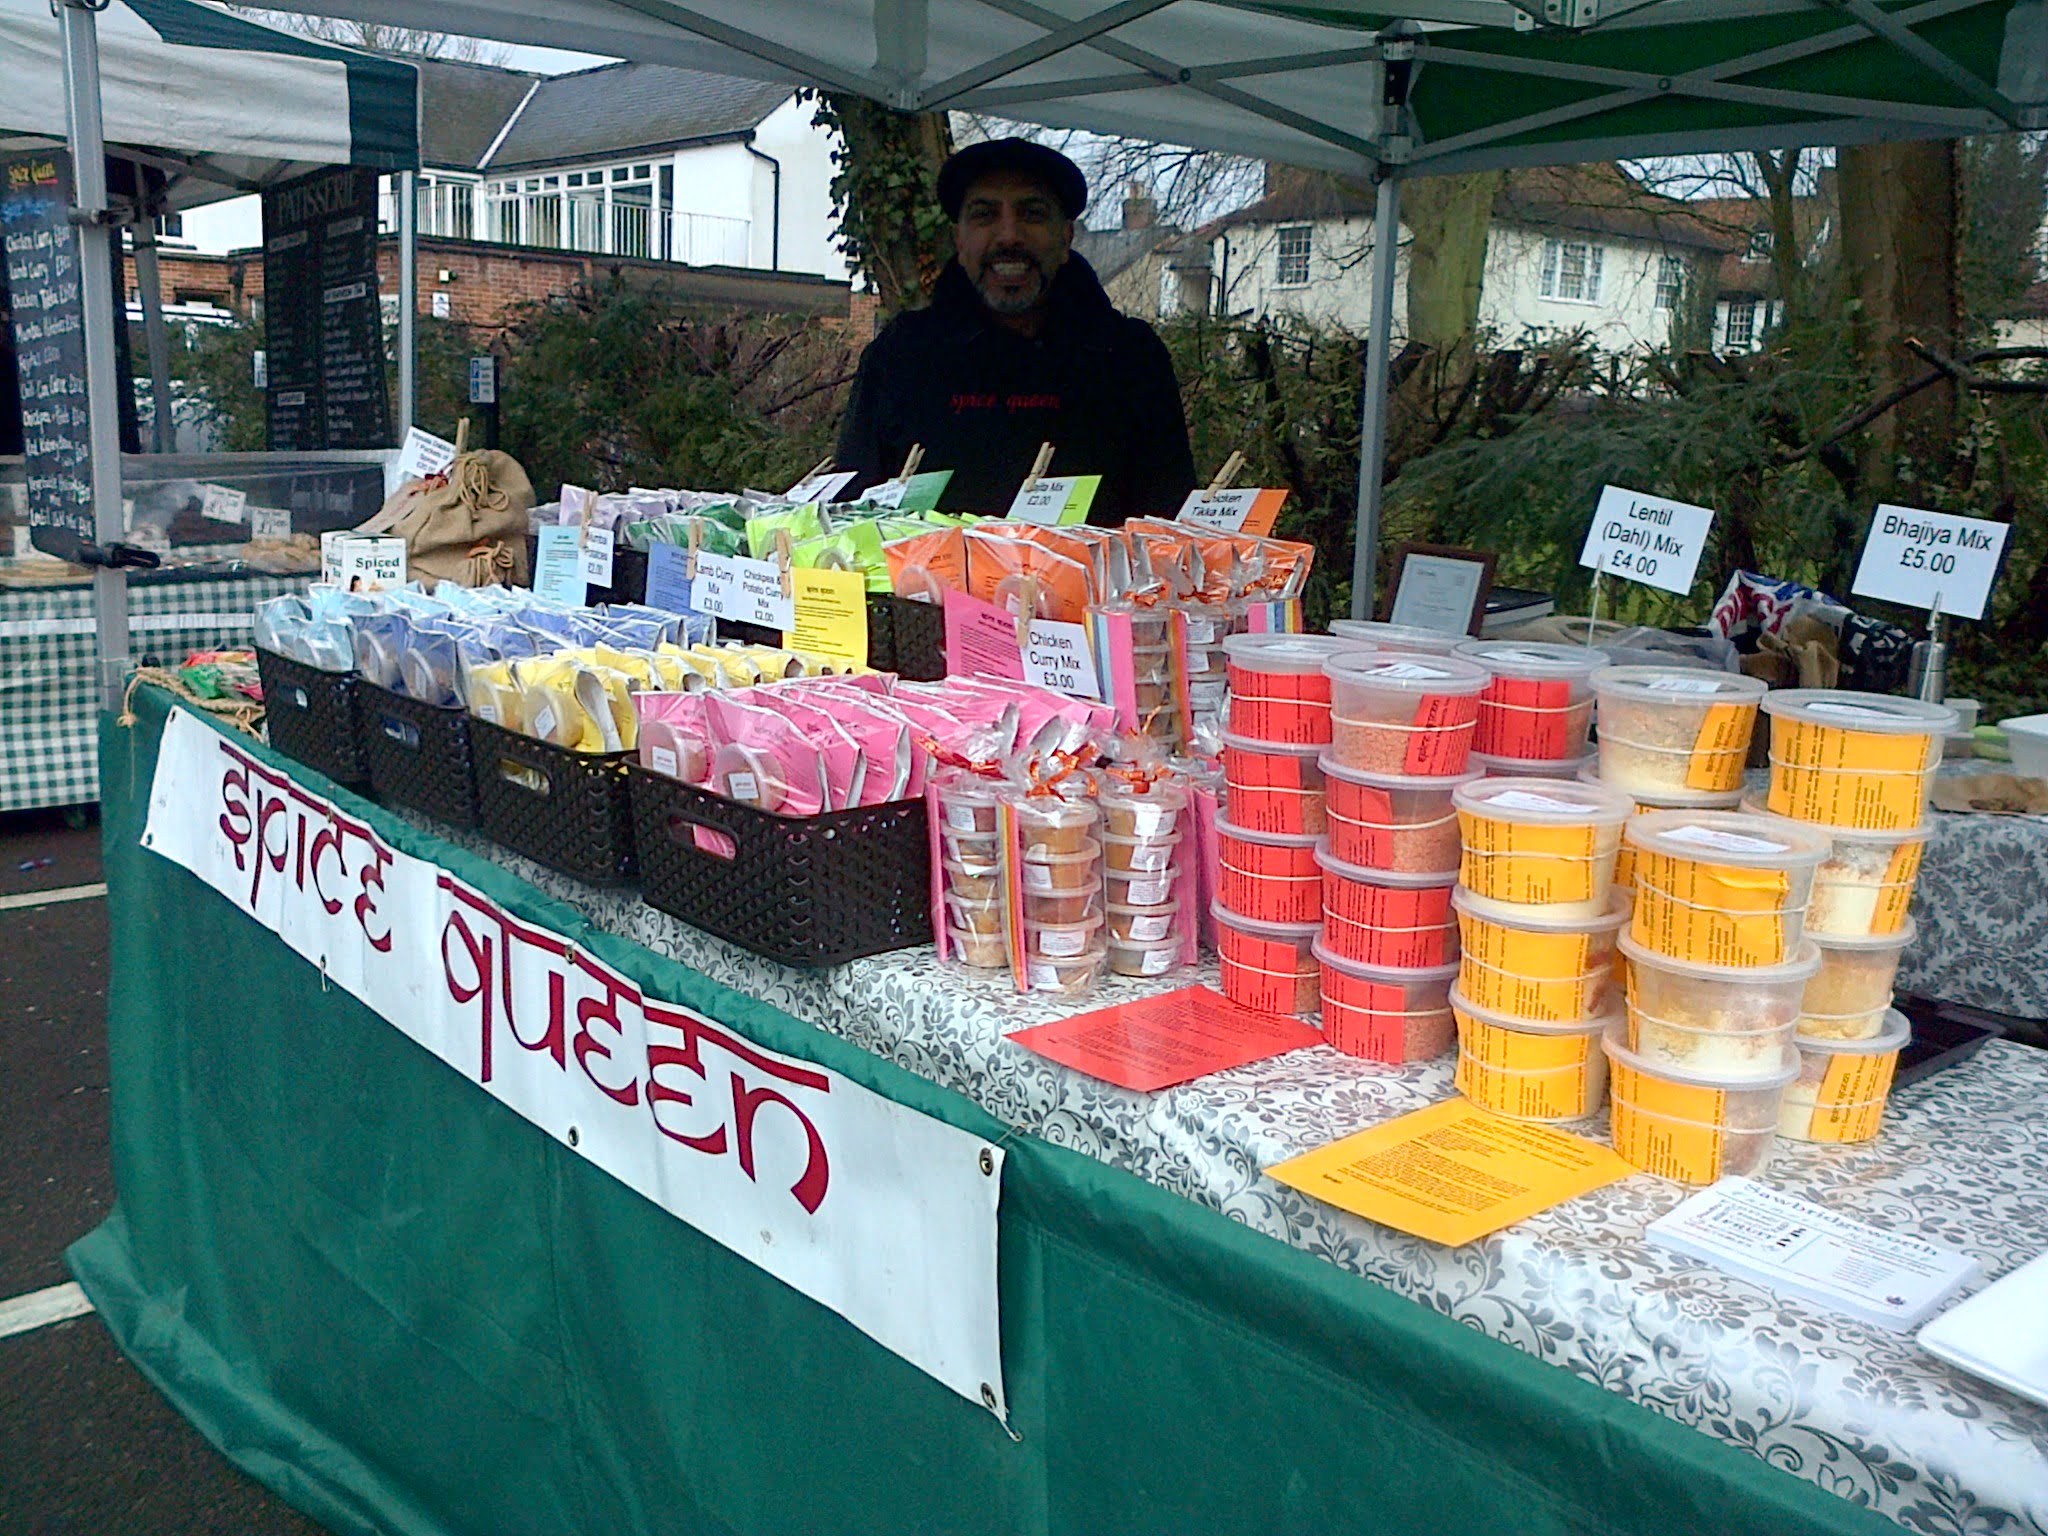 Xmas Market 2013, Sawbridgeworth